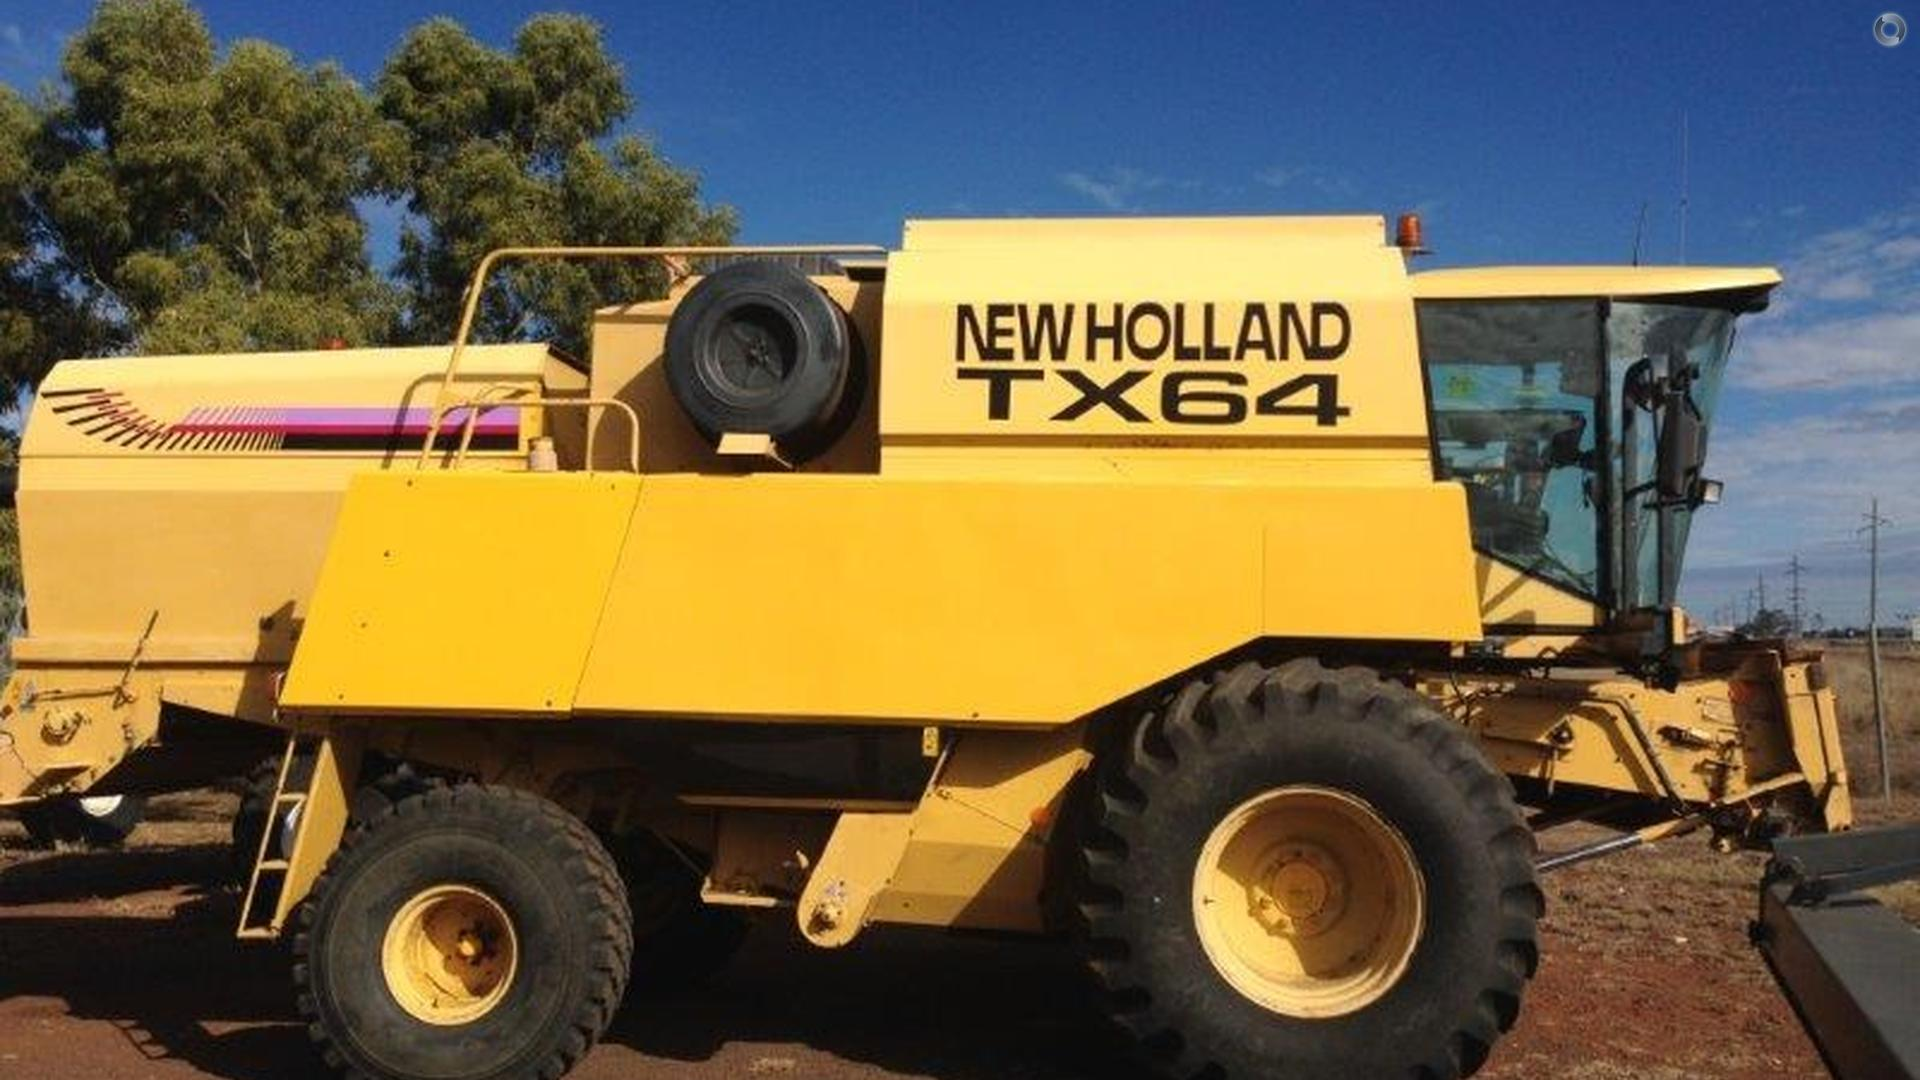 1996 New Holland TX64 Combine Harvester